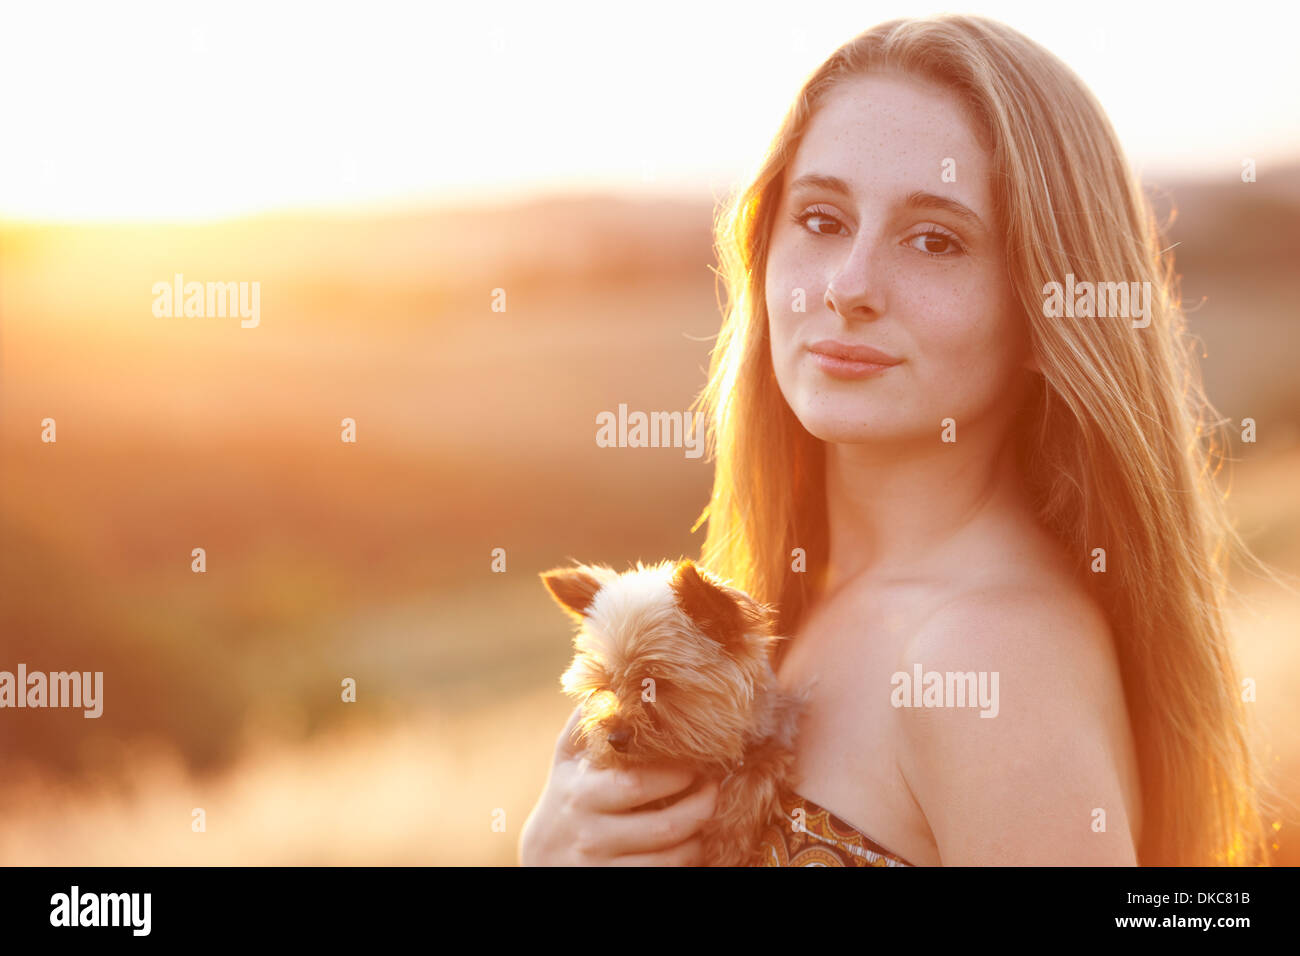 Teenager standing in field at dusk holding domestic dog - Stock Image